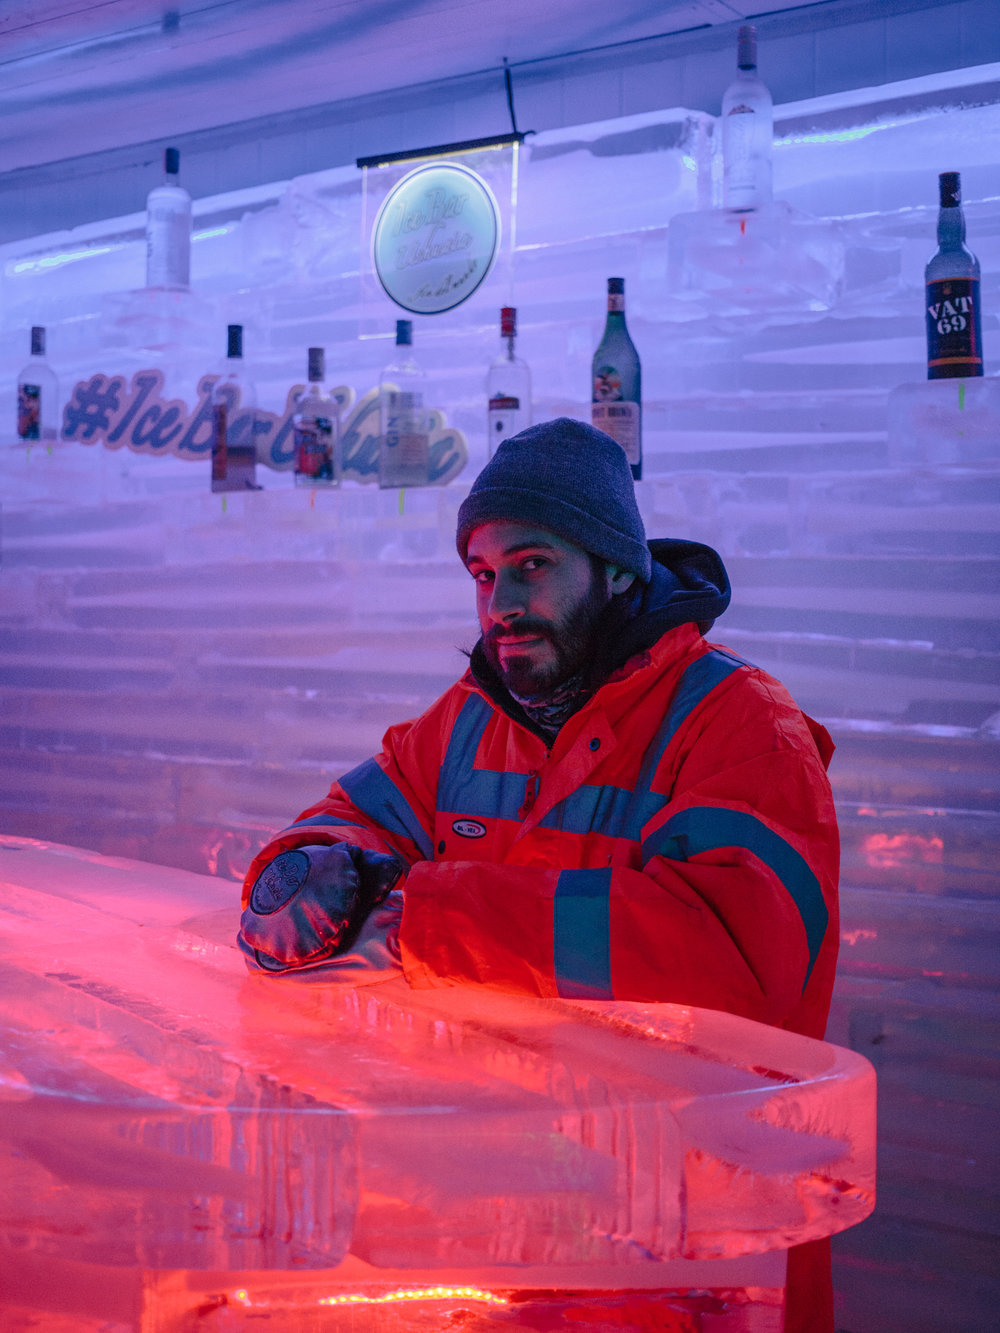 Santiago, bartender at the  Ushuaia Ice Bar . The temperature inside the bar is constantly kept around -17° and for this reason he can't work more than 30 minutes straight.